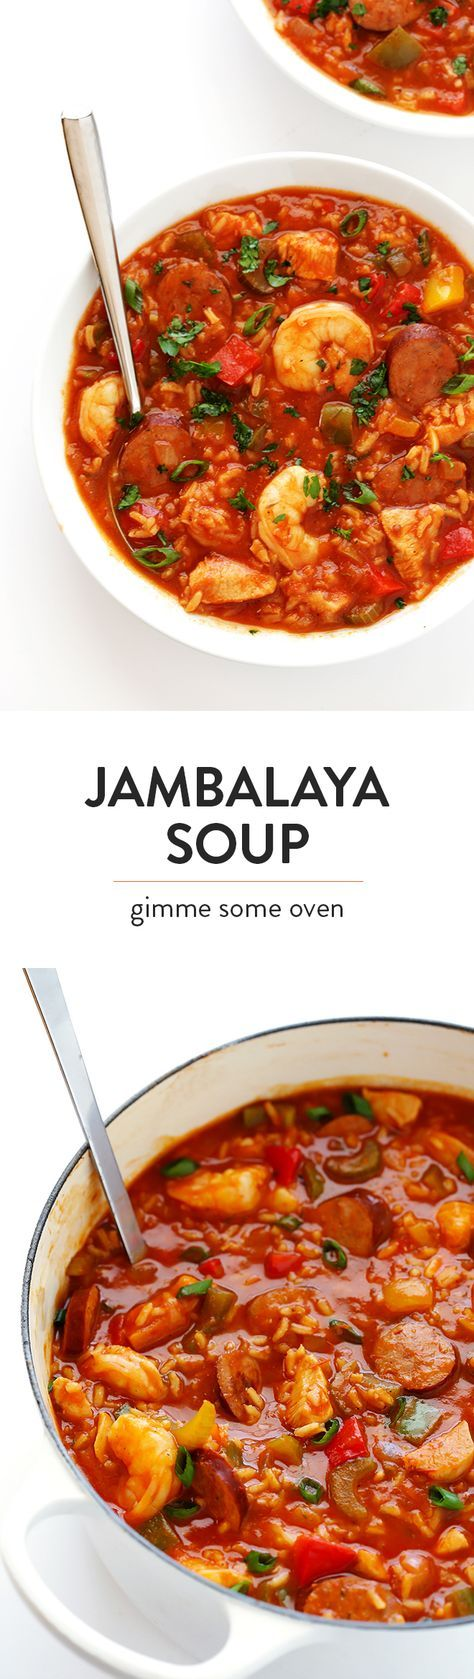 This Jambalaya Soup recipe can be made with shrimp, chicken, Andouille sausage -- or all three! It's easy to make, and so hearty and delicious.   gimmesomeoven.com